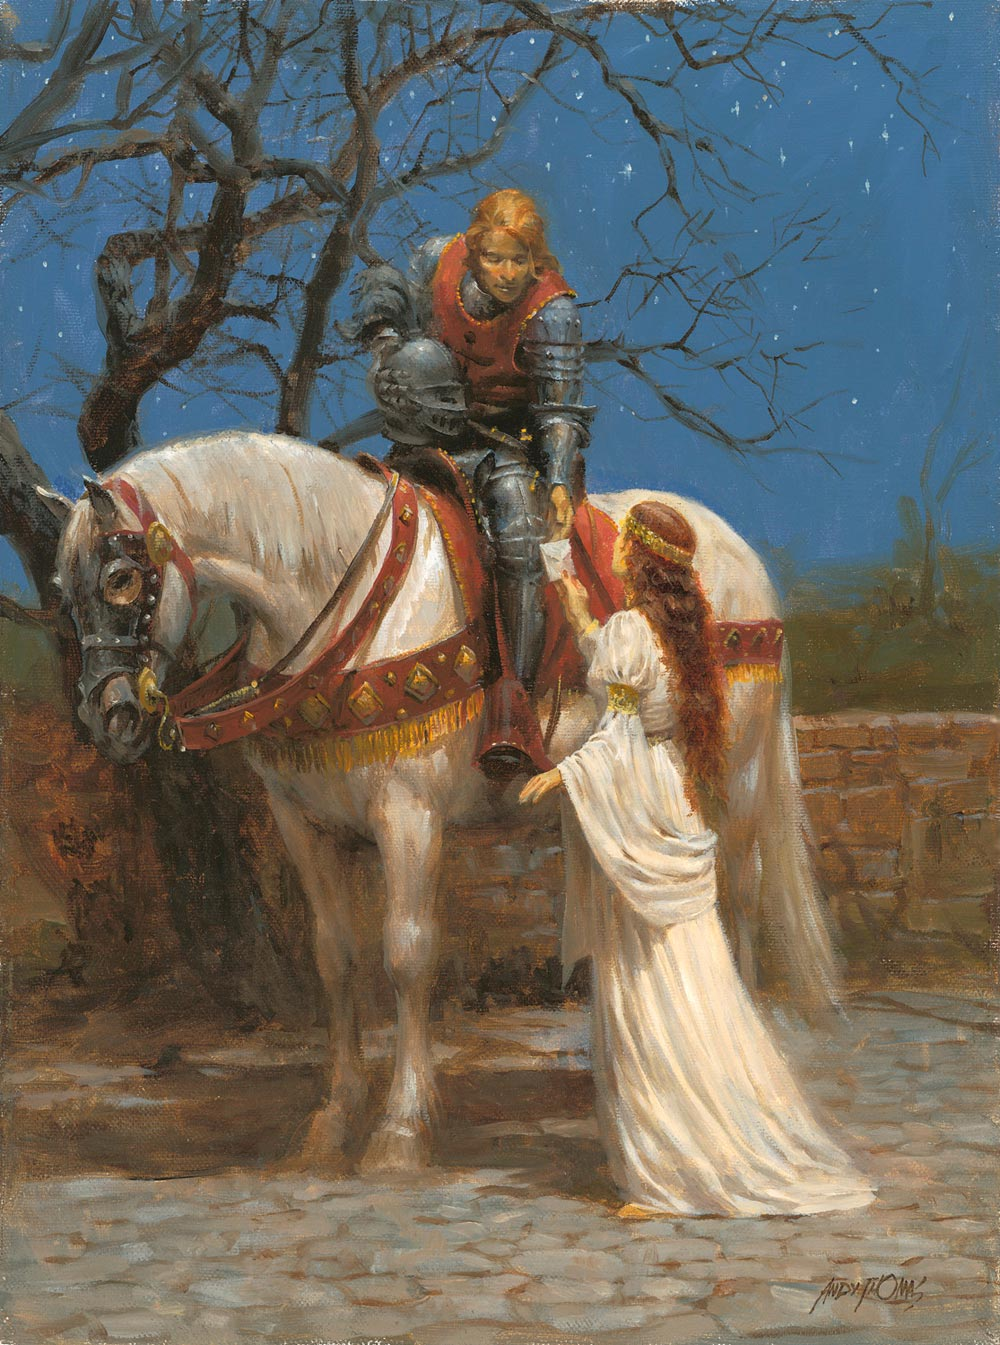 andy thomas a knight and his lady